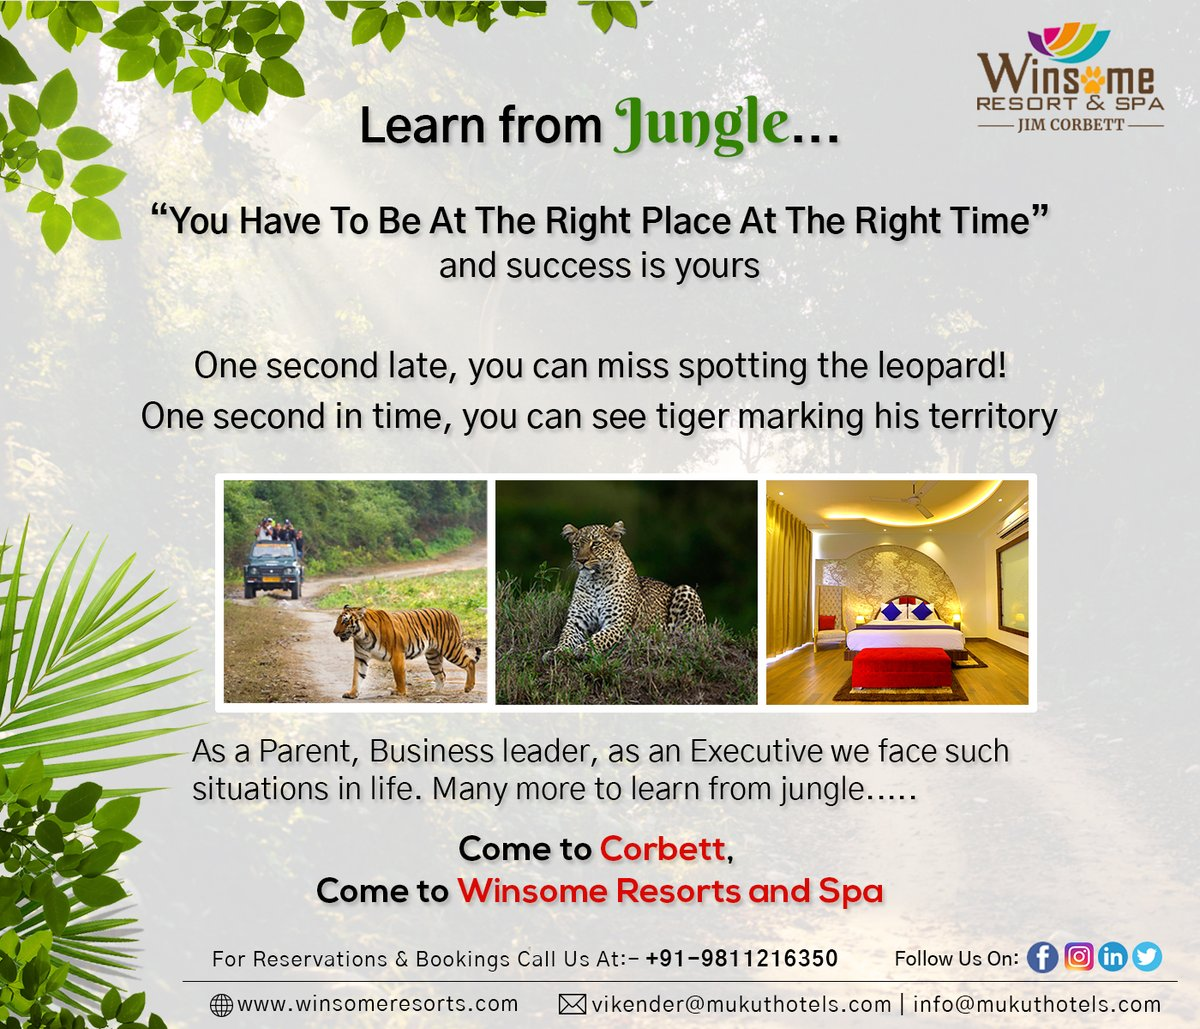 """Learn from Jungle....... """"You Have To Be At The Right Place At The Right Time"""" and success is yours.   Come to Corbett, come to Winsome Resorts and Spa.  Contact Us:- +91-9811216350  #junglesafari #corbettview #wildlifelovers #natureview #travellers #wildlifephotography #resorts https://t.co/2aW5GfyX4O"""